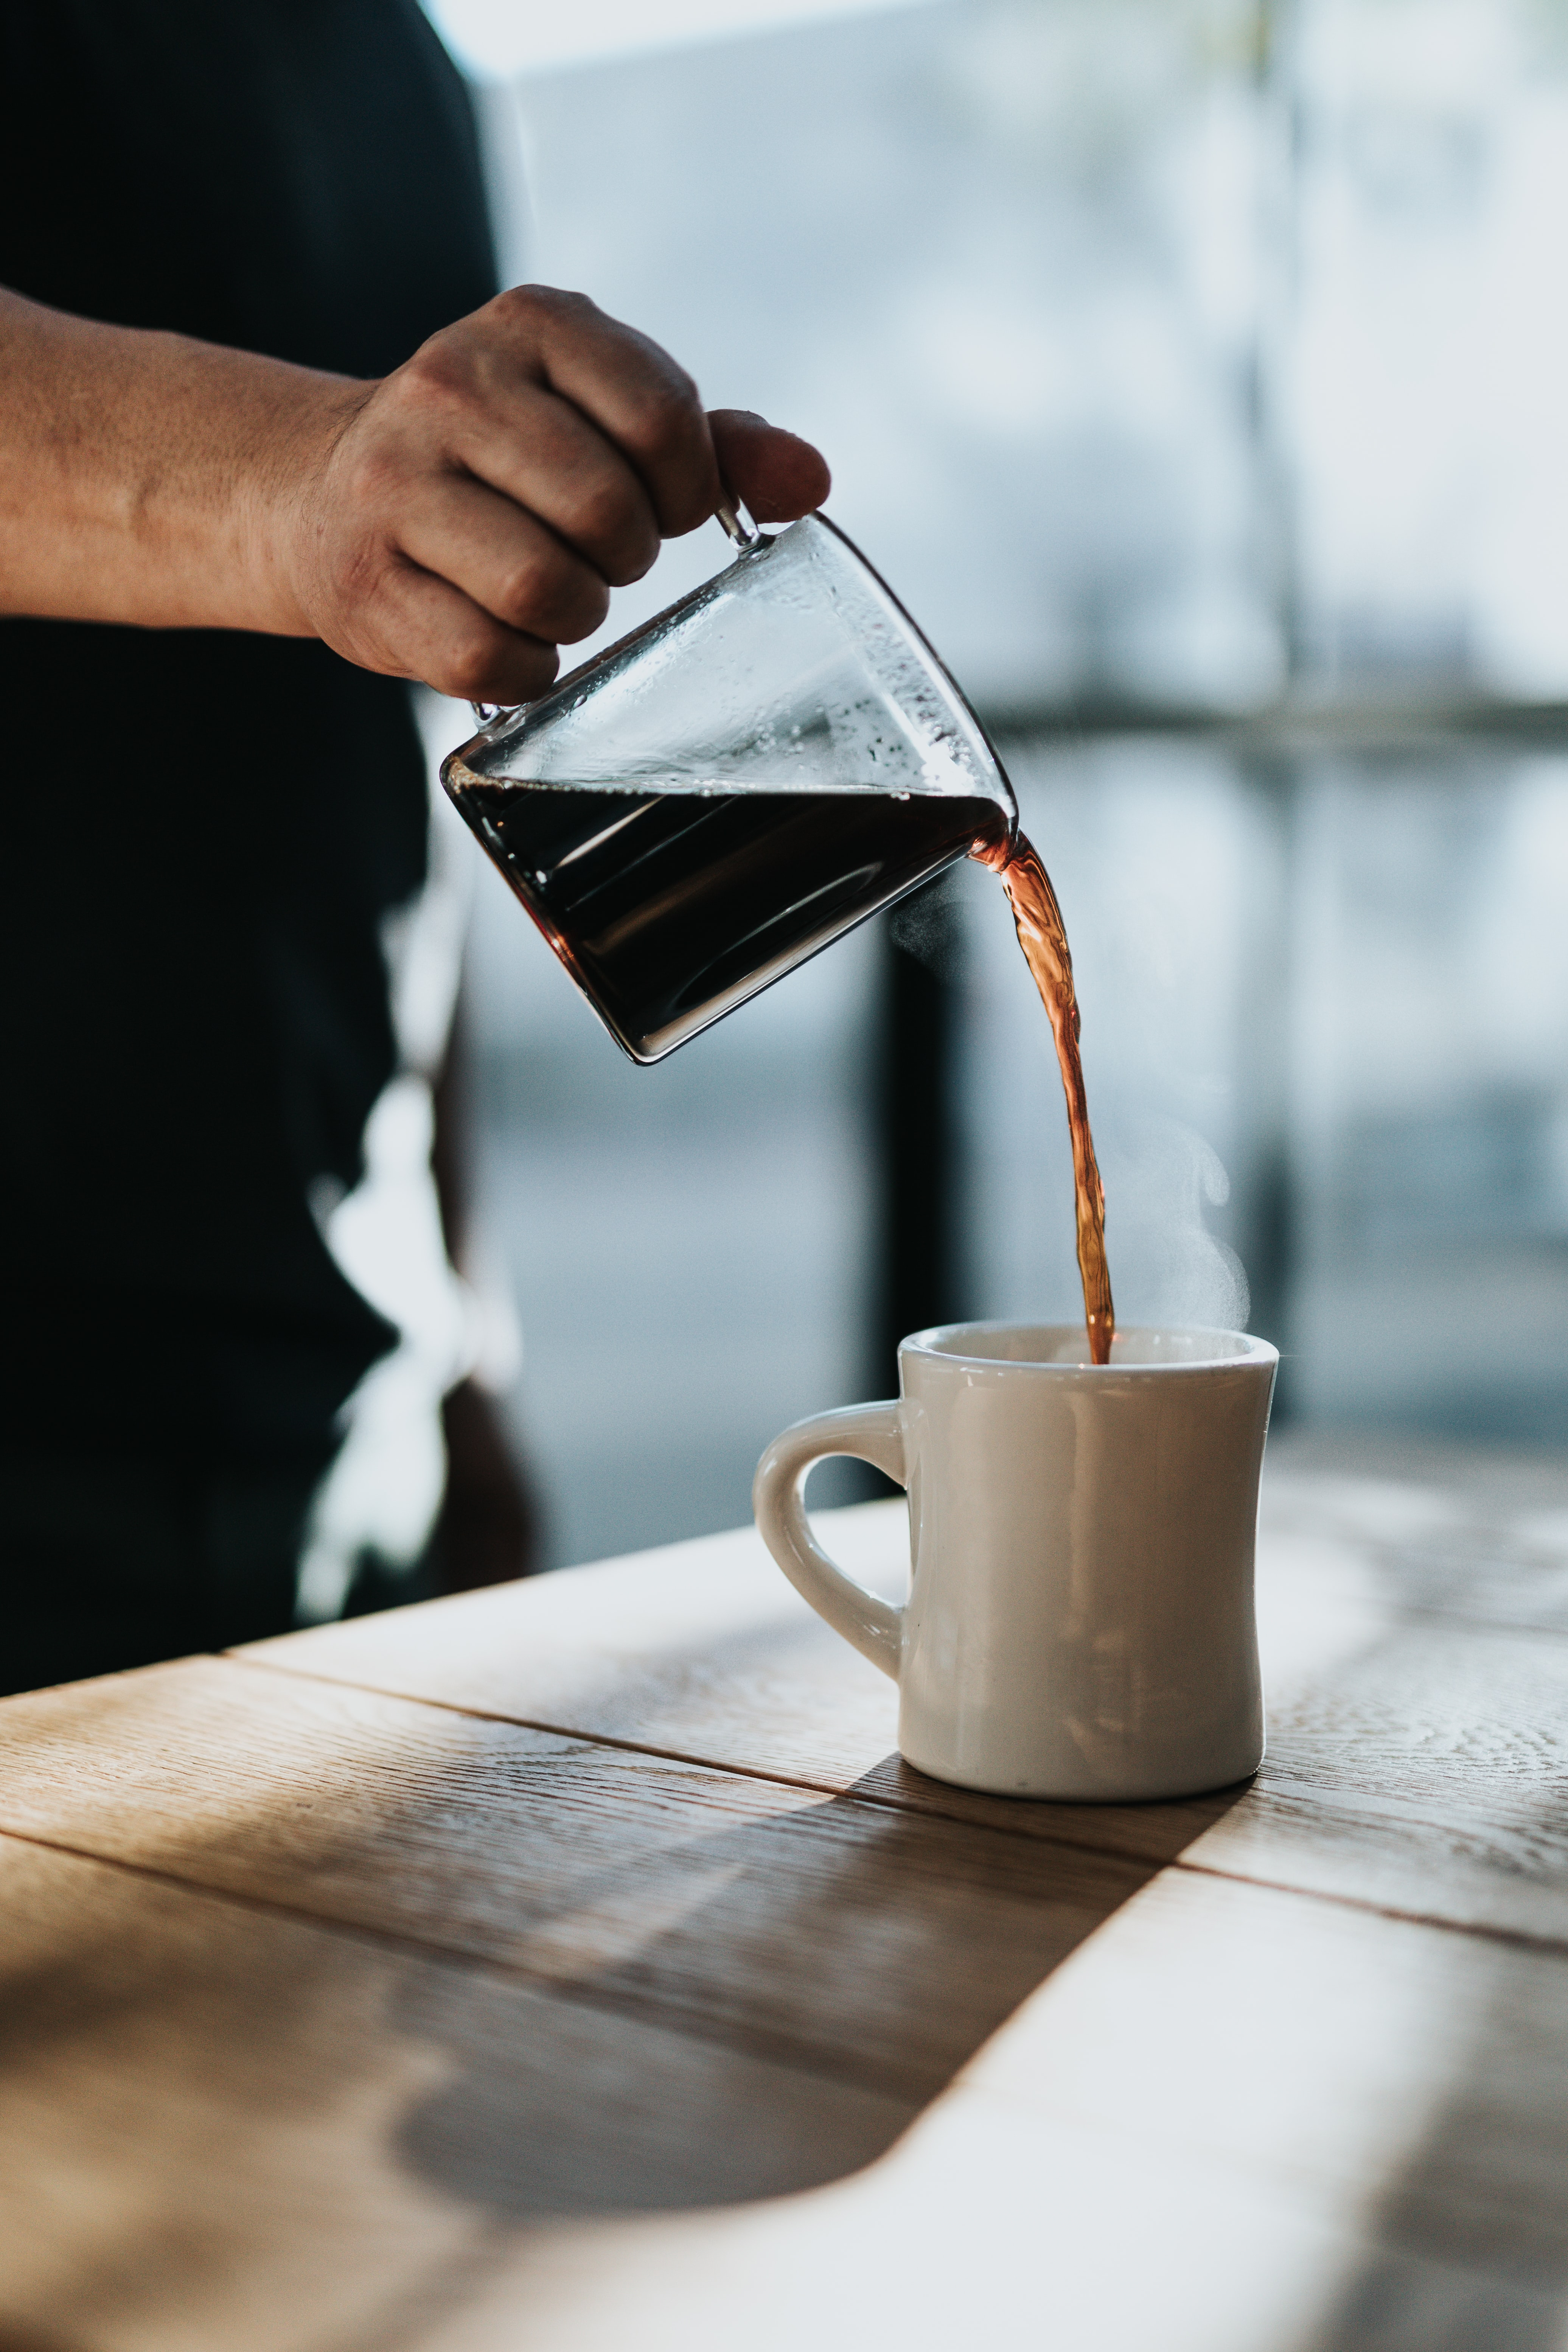 'Keep the Cup': A Guide to Safely Using Your Reusable Coffee Cup During COVID-19